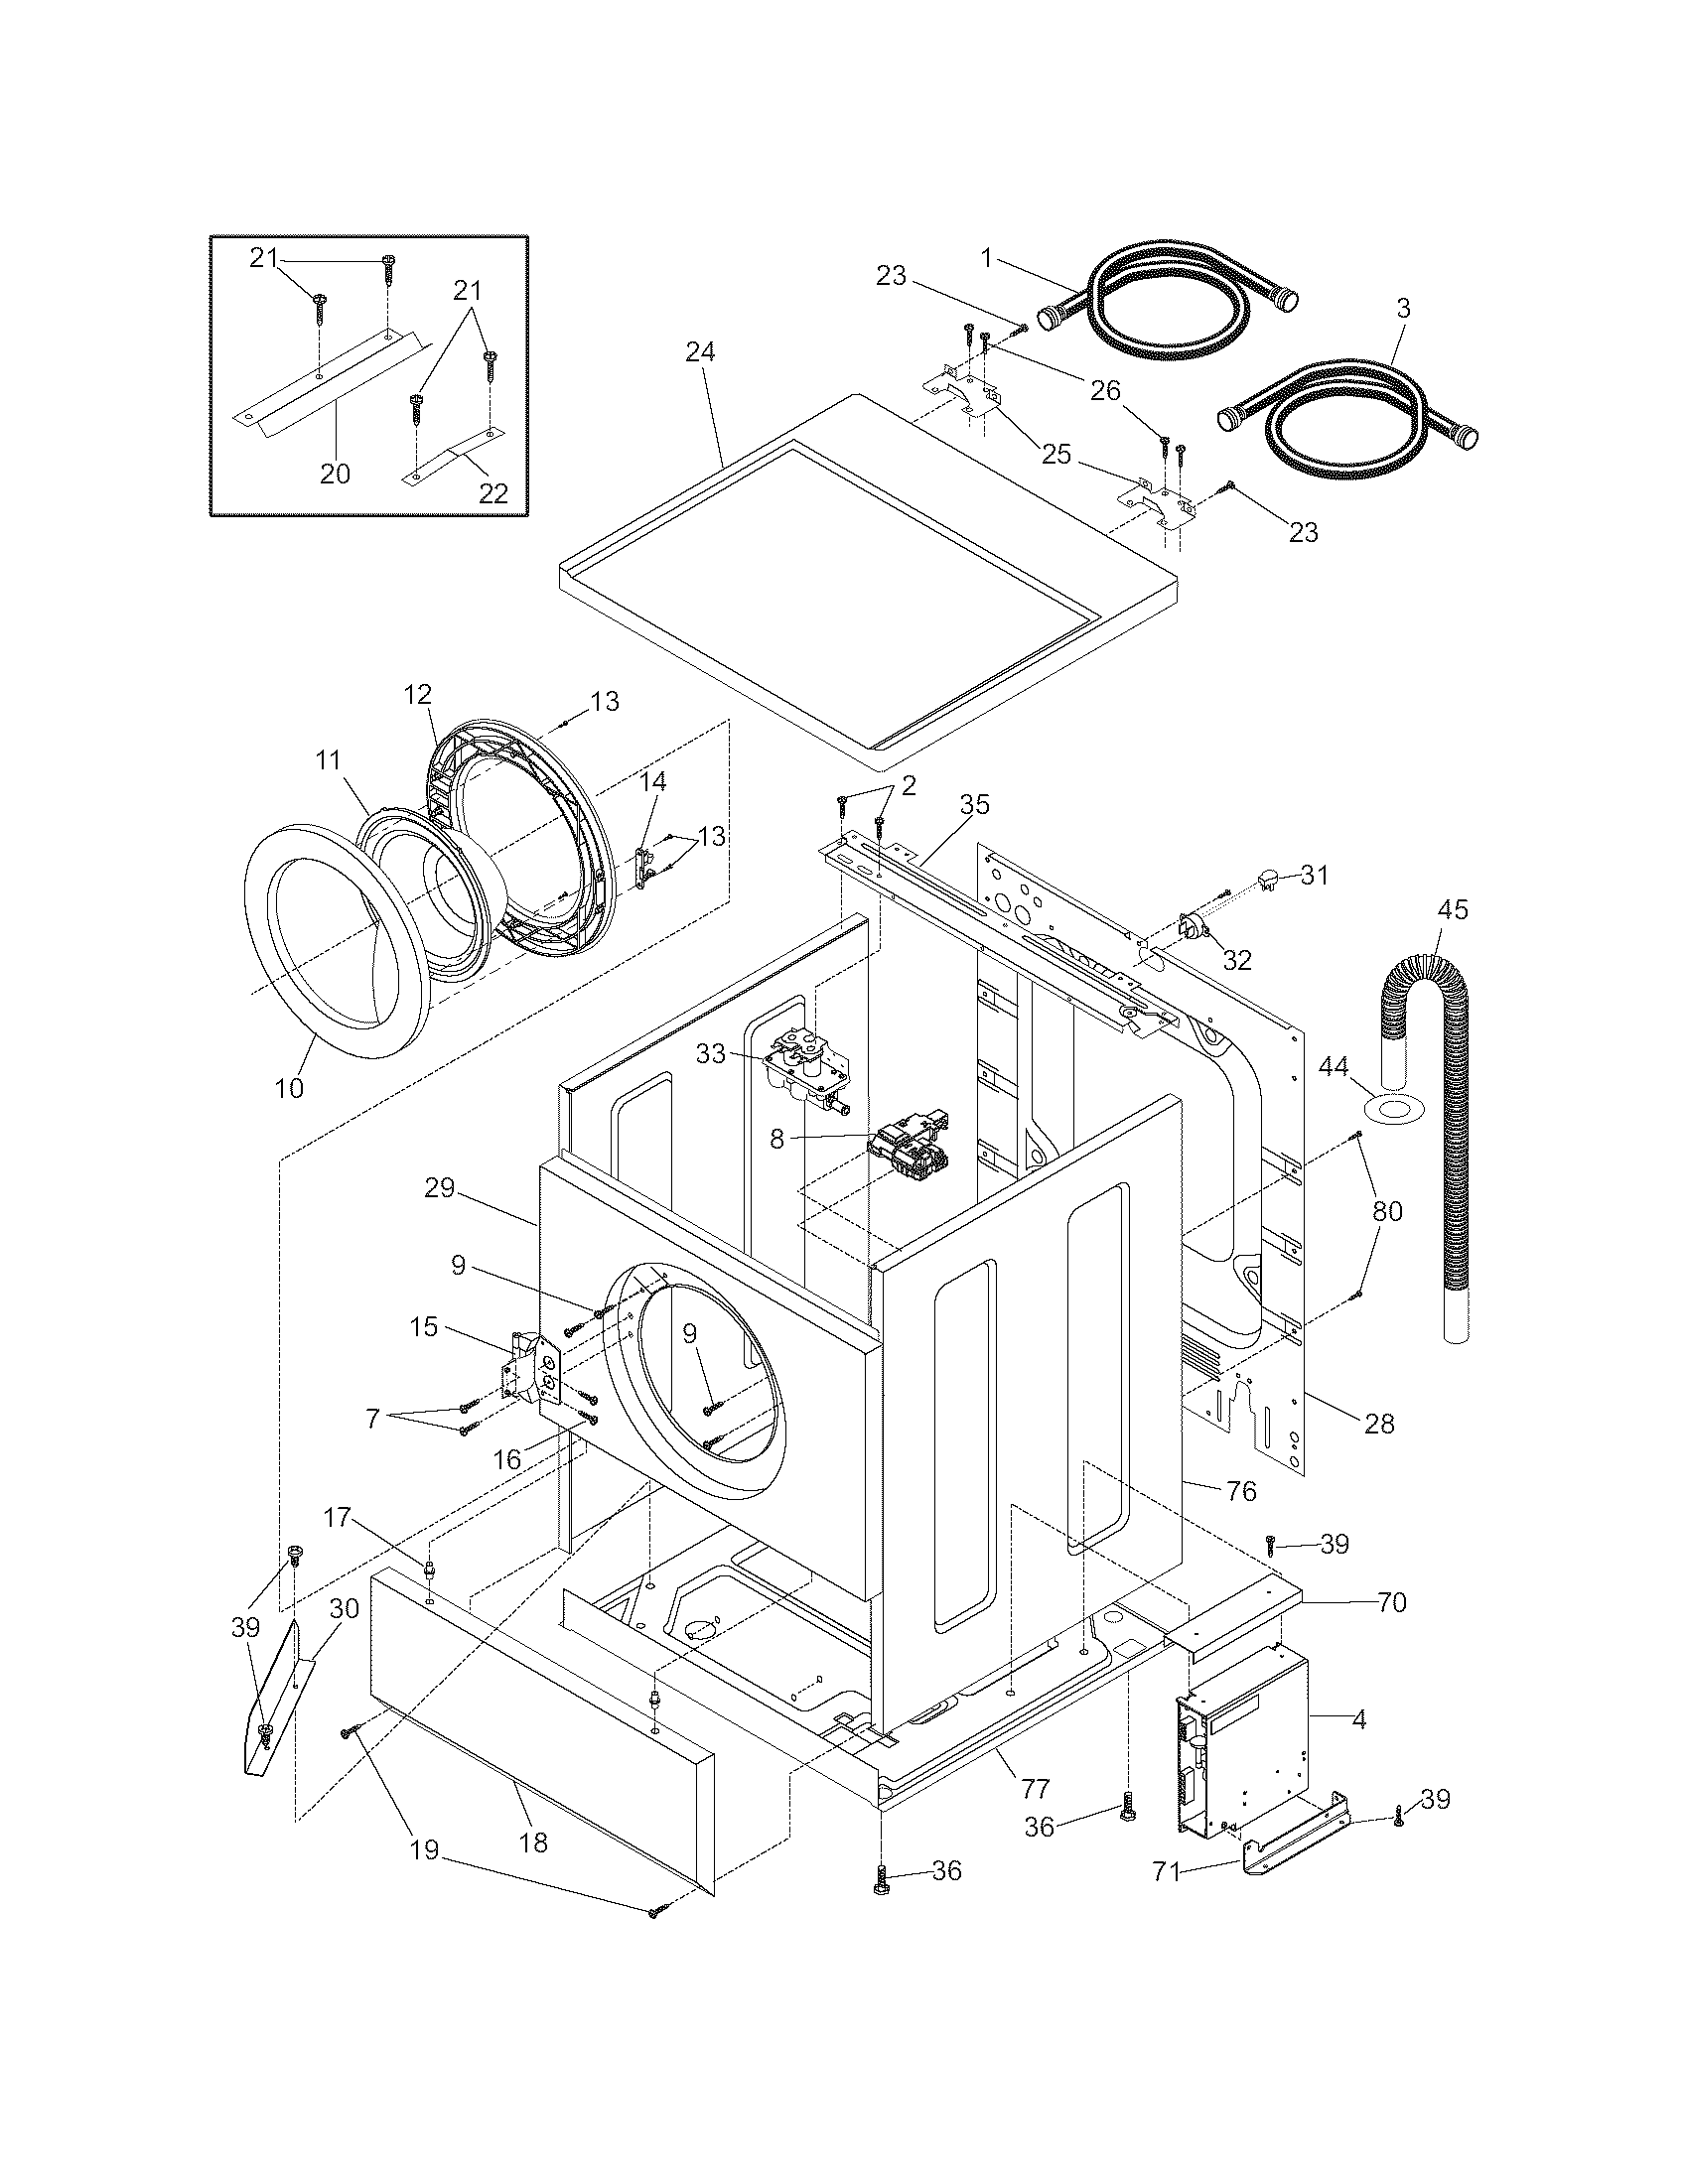 schematic for maytag dryer as well as kenmore dryer thermal fuse